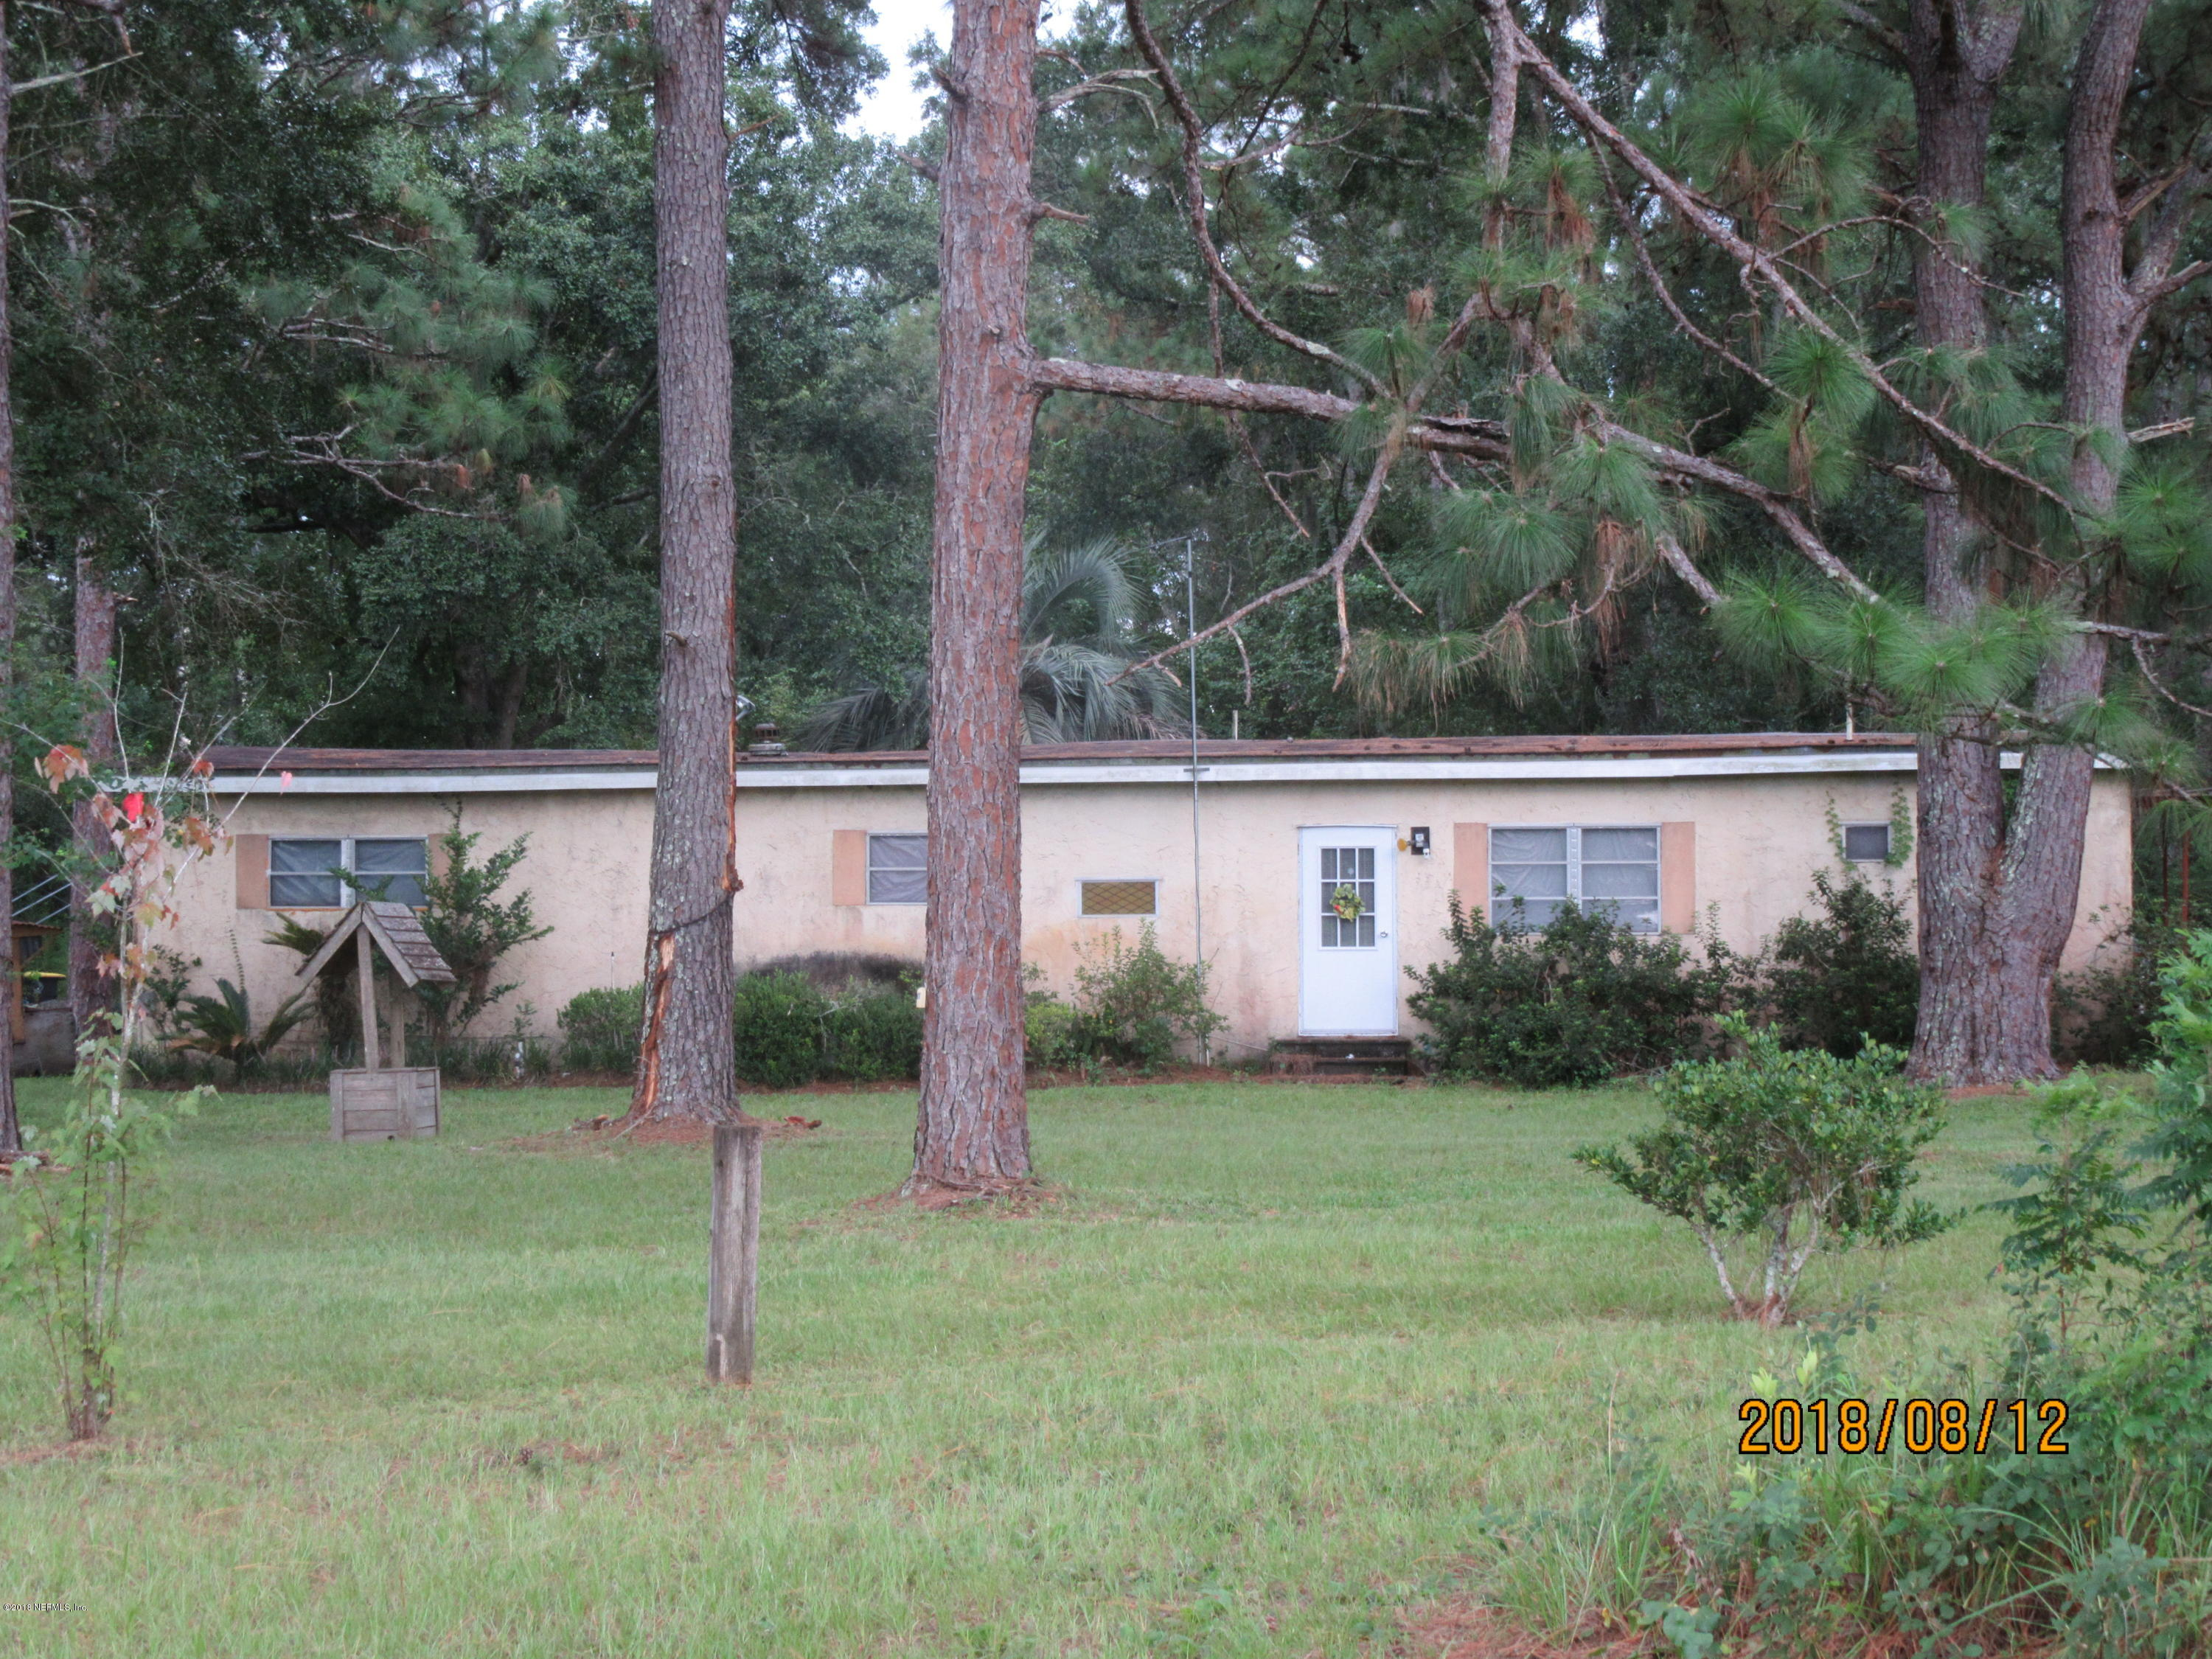 6519 CONNIE JEAN, JACKSONVILLE, FLORIDA 32222, 3 Bedrooms Bedrooms, ,2 BathroomsBathrooms,Residential - single family,For sale,CONNIE JEAN,951945